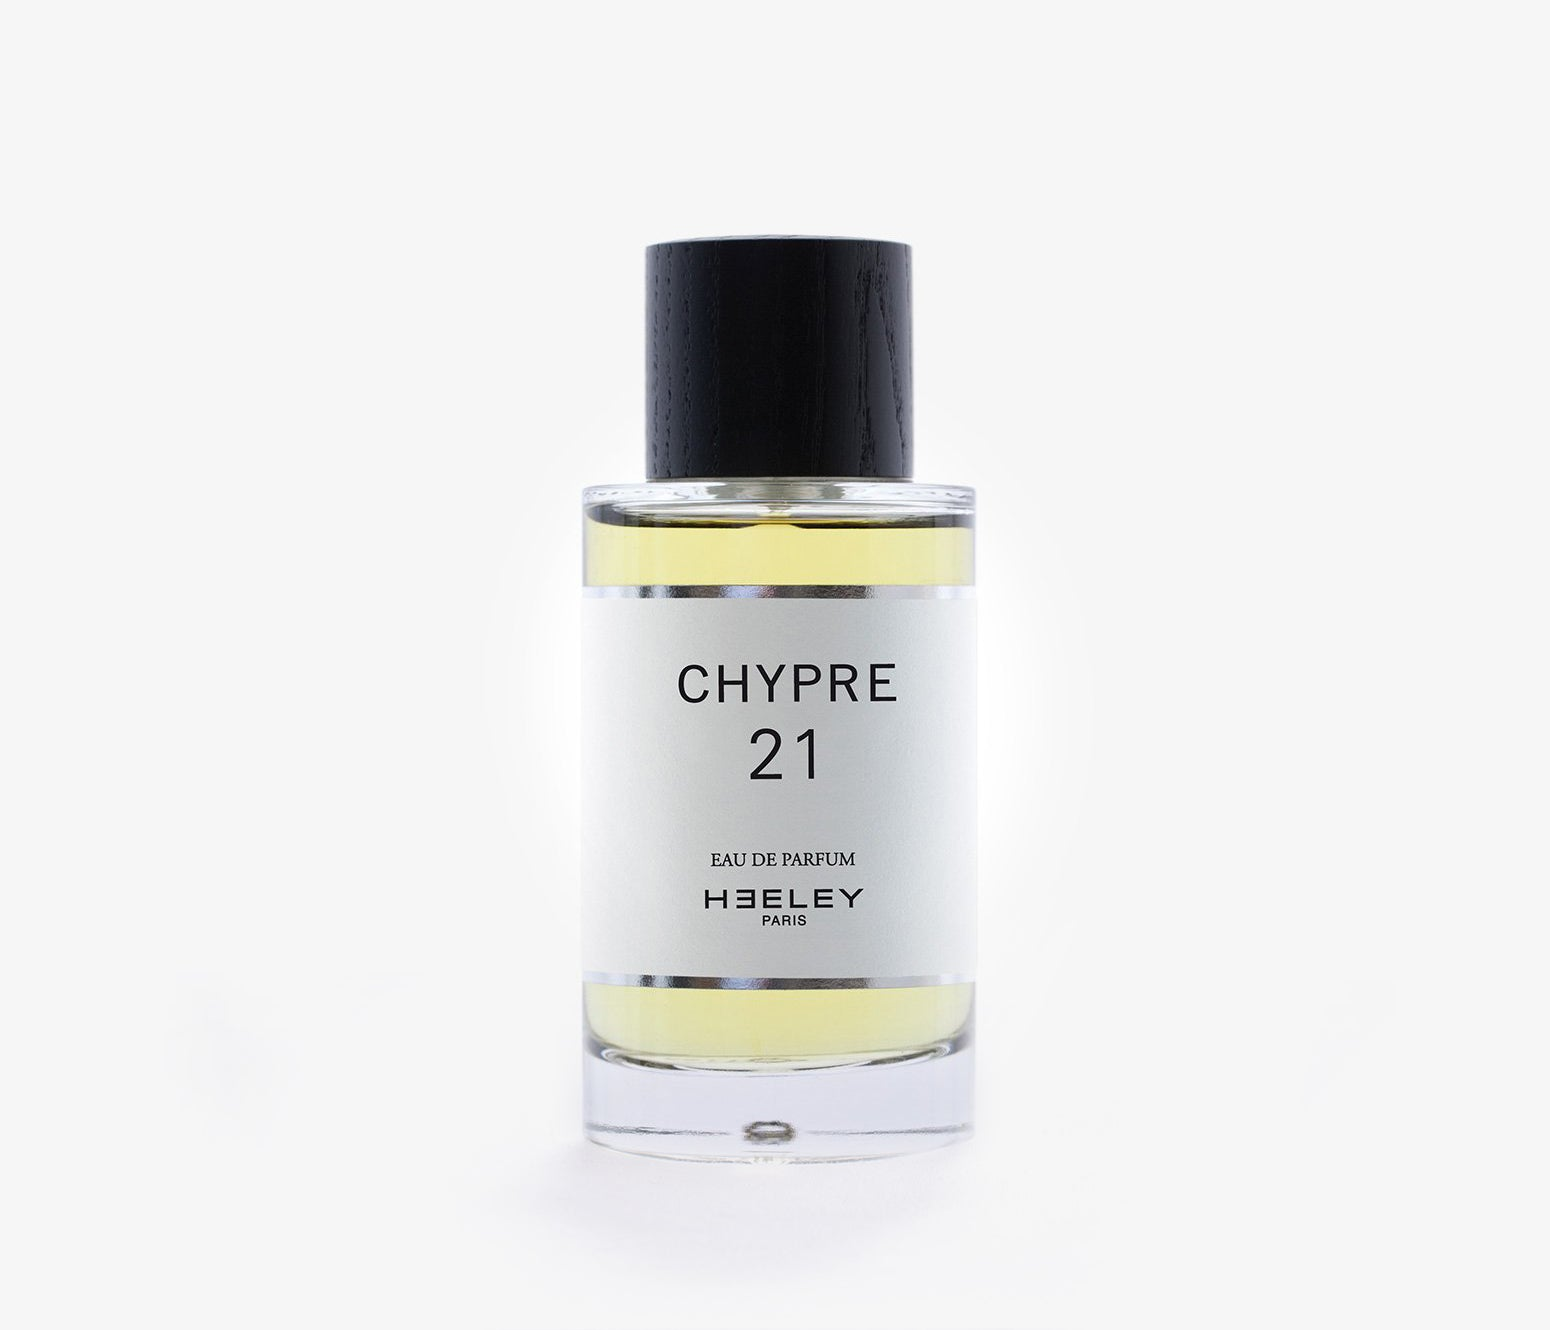 Heeley - Chypre 21 - 100ml - HXF9959 - Product Image - Fragrance - Les Senteurs